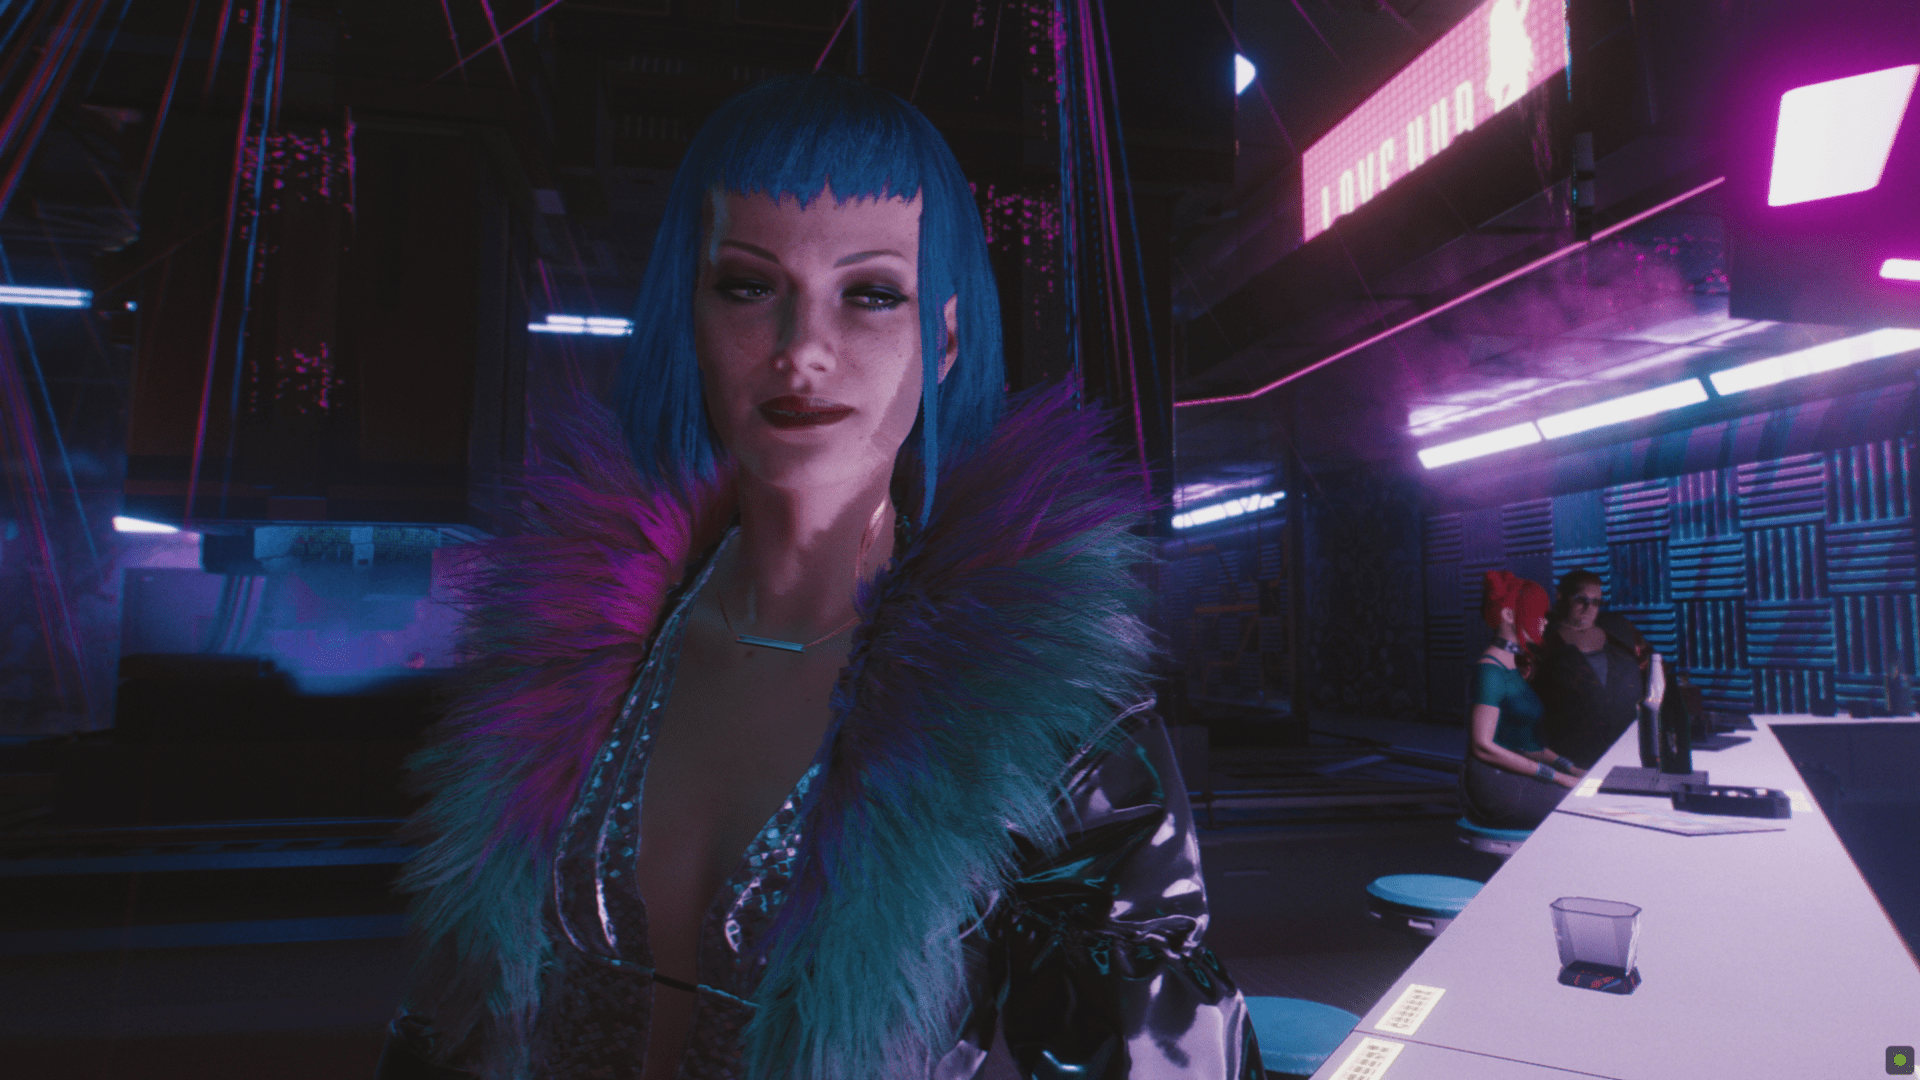 Can You Save Evelyn Parker in Cyberpunk 2077?